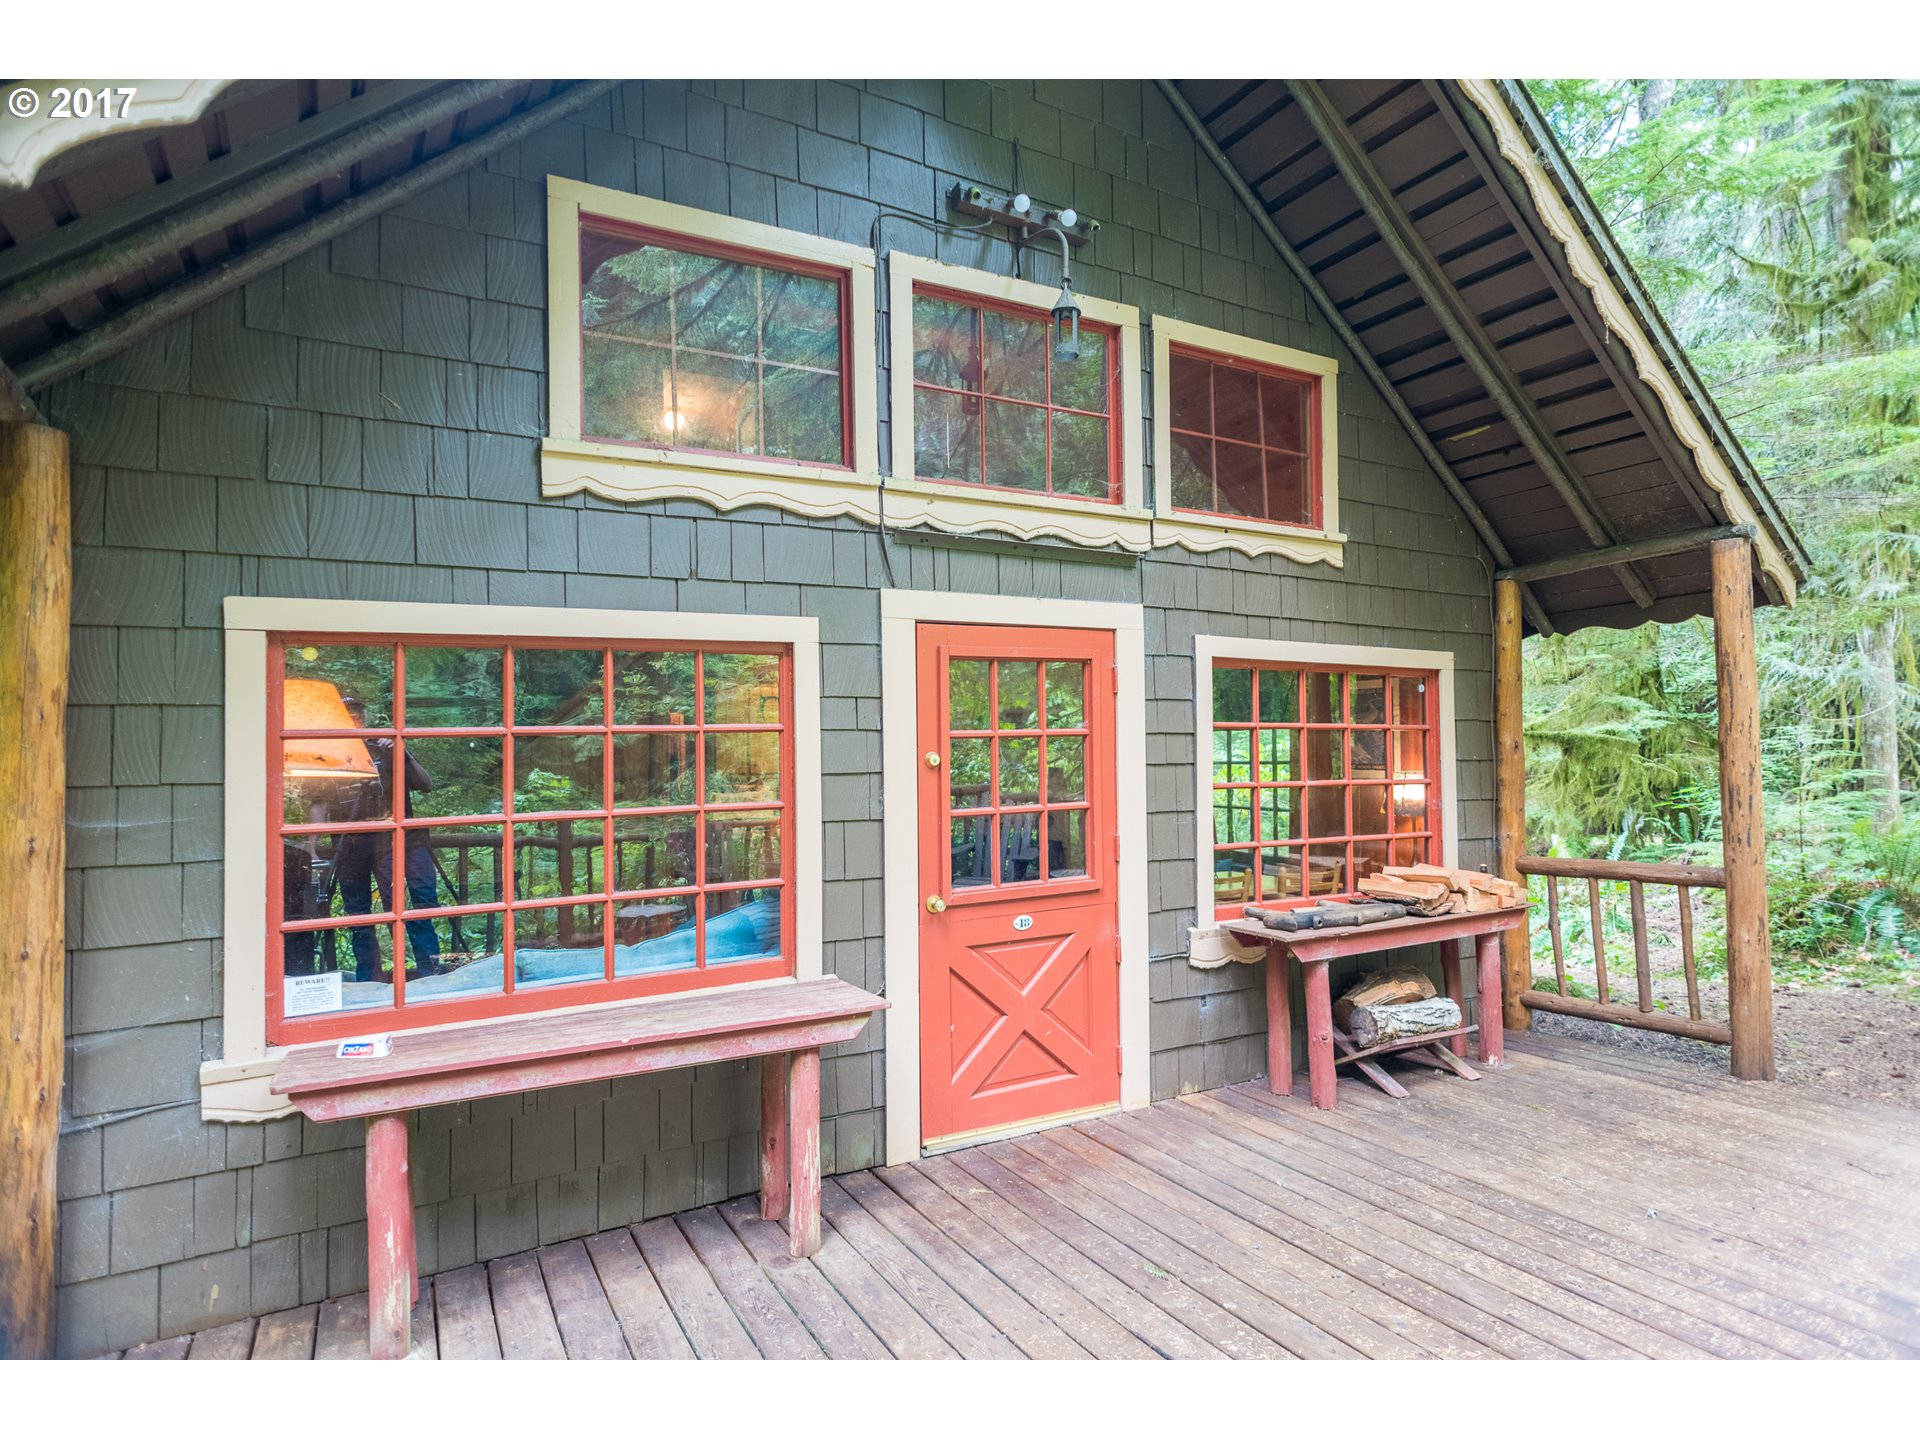 76296 E ROAD 30 Lot 48 Mt Hood  Home Listings - Merit Properties Mt Hood Real Estate